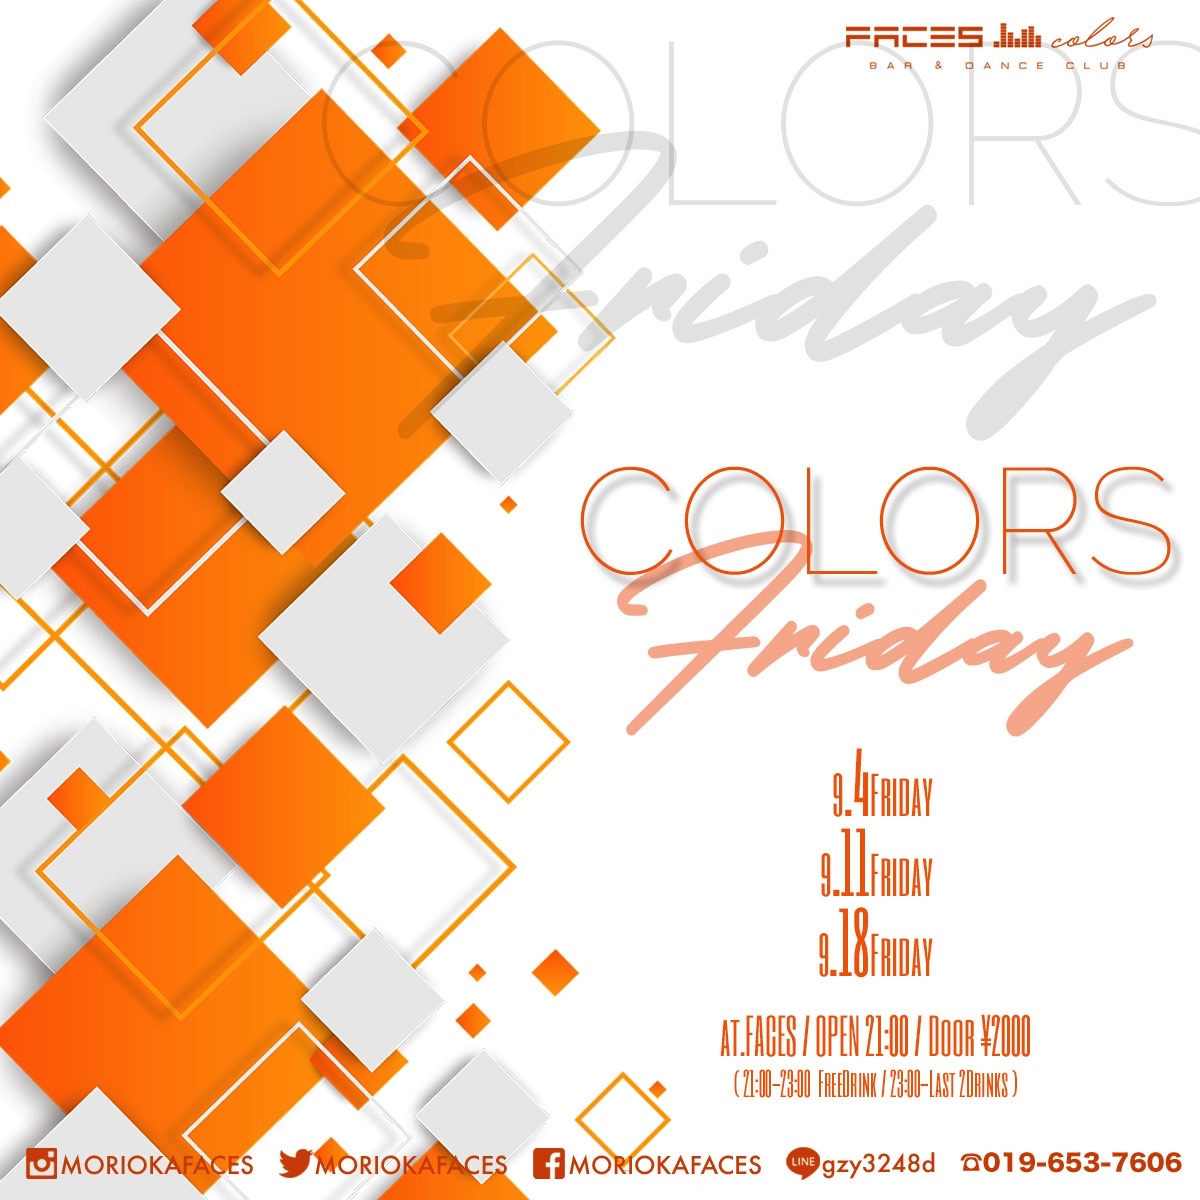 9.18(FRI) COLORS FRIDAY